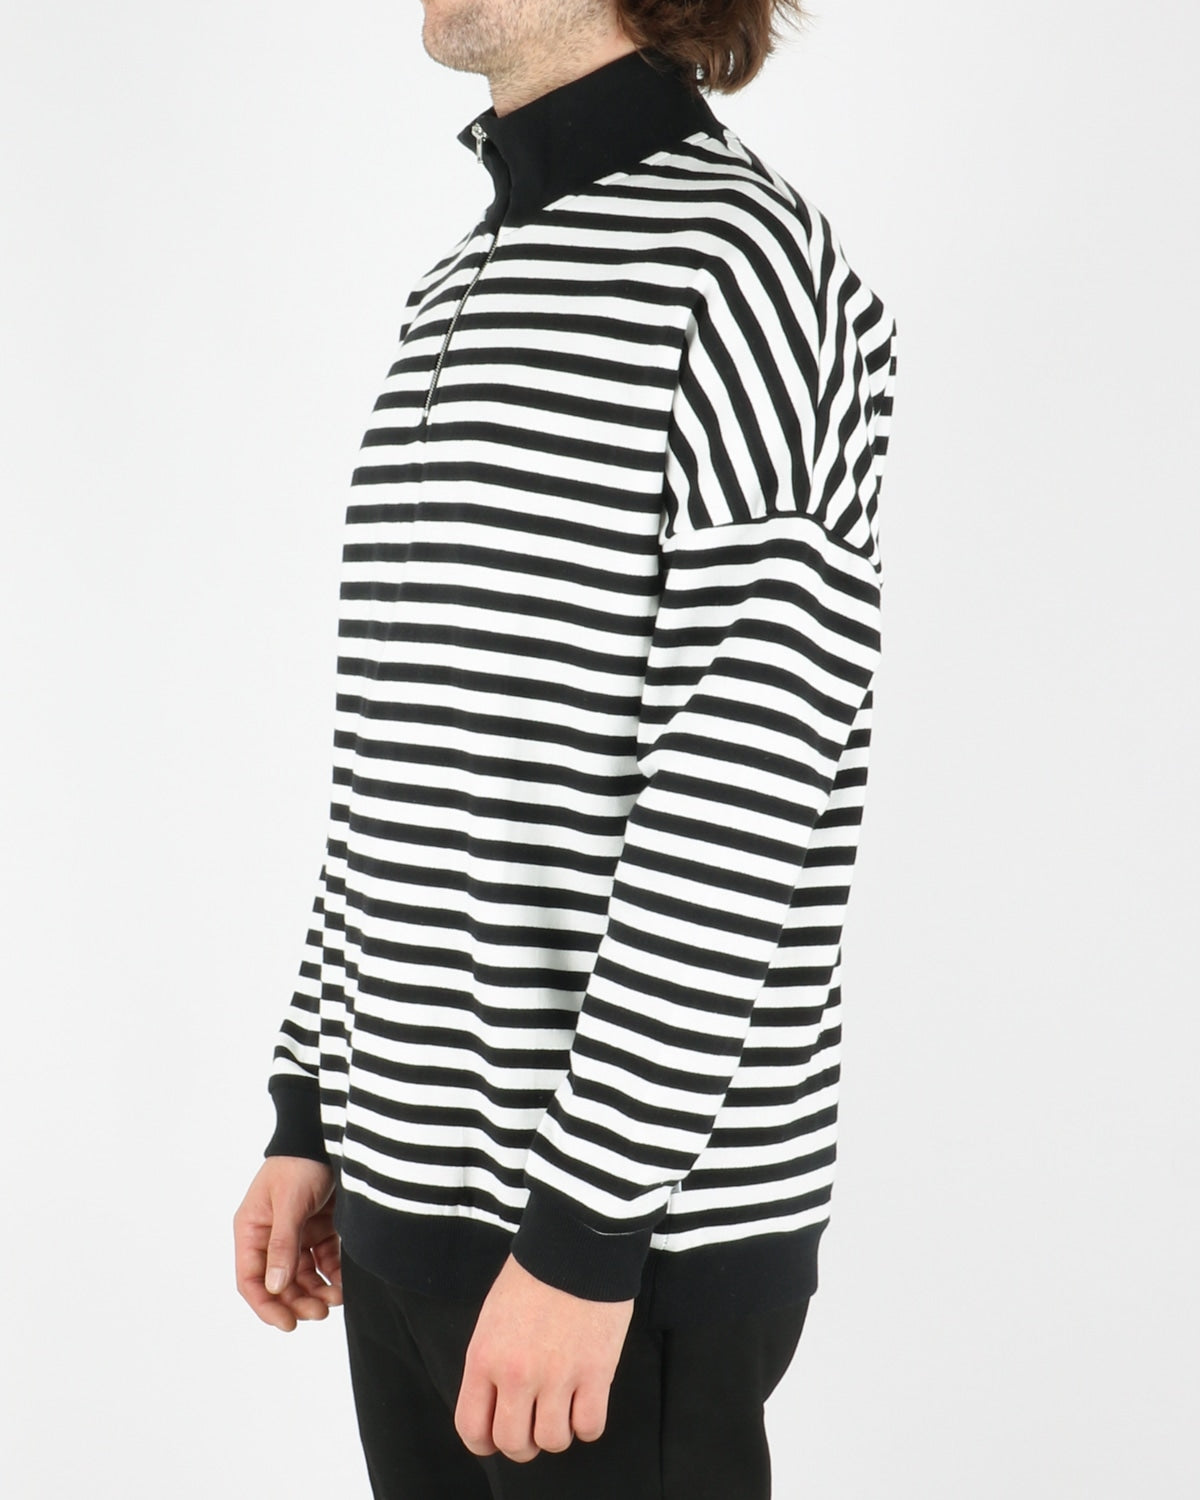 woodbird_sail half zip sweat_white black_2_5